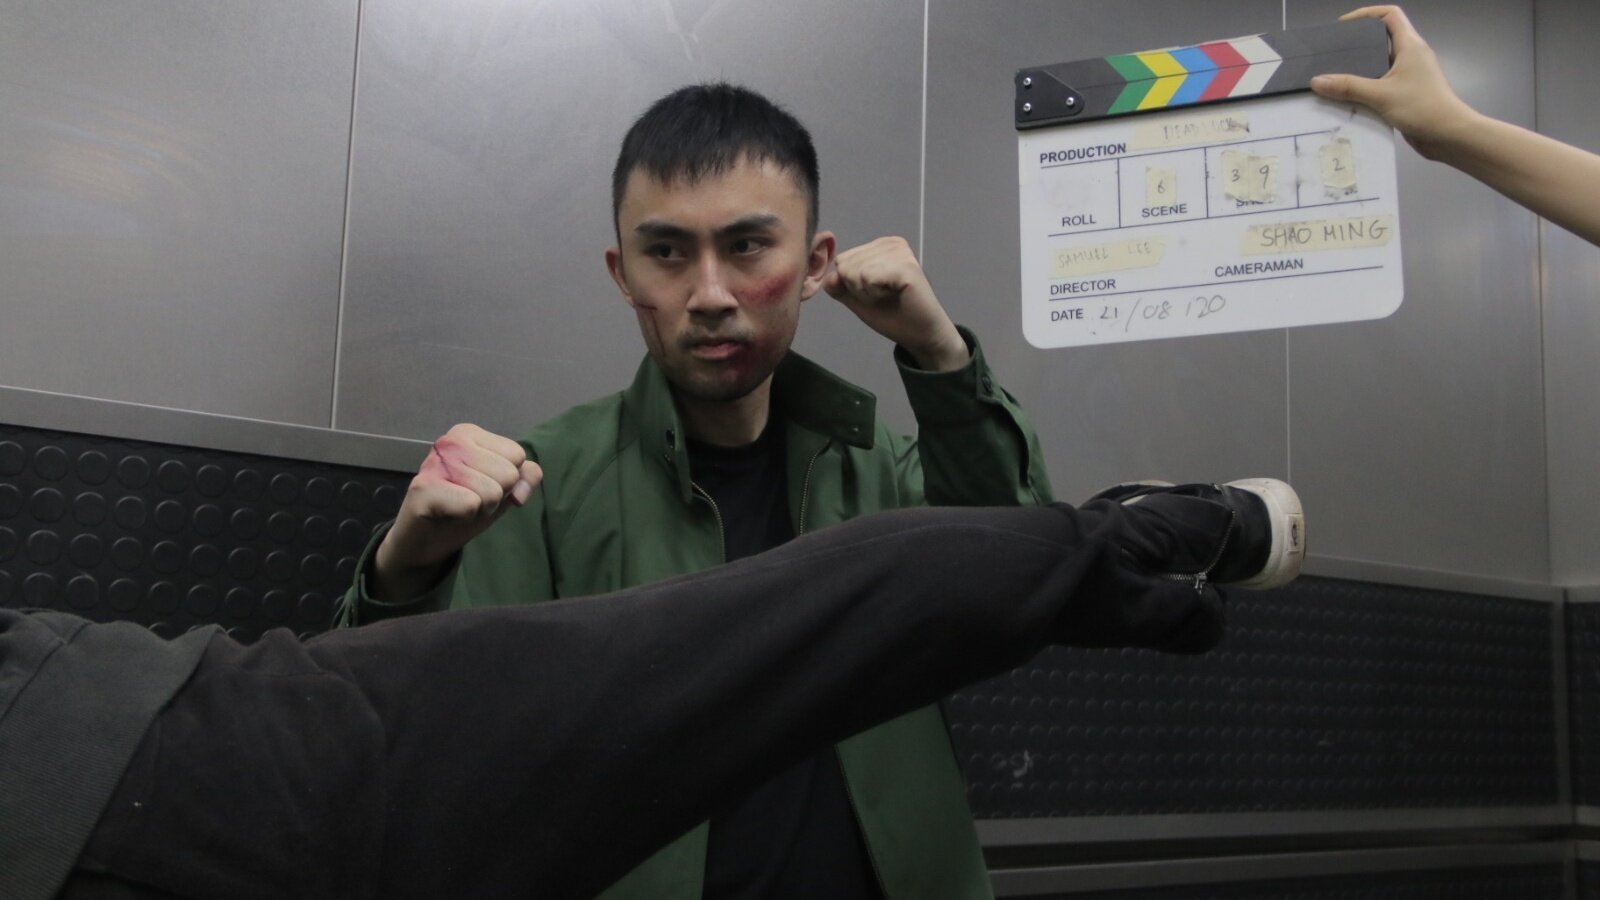 From Sith Lord To Hitman: This Singapore Stuntman Aspires To Be The Next Donnie Yen